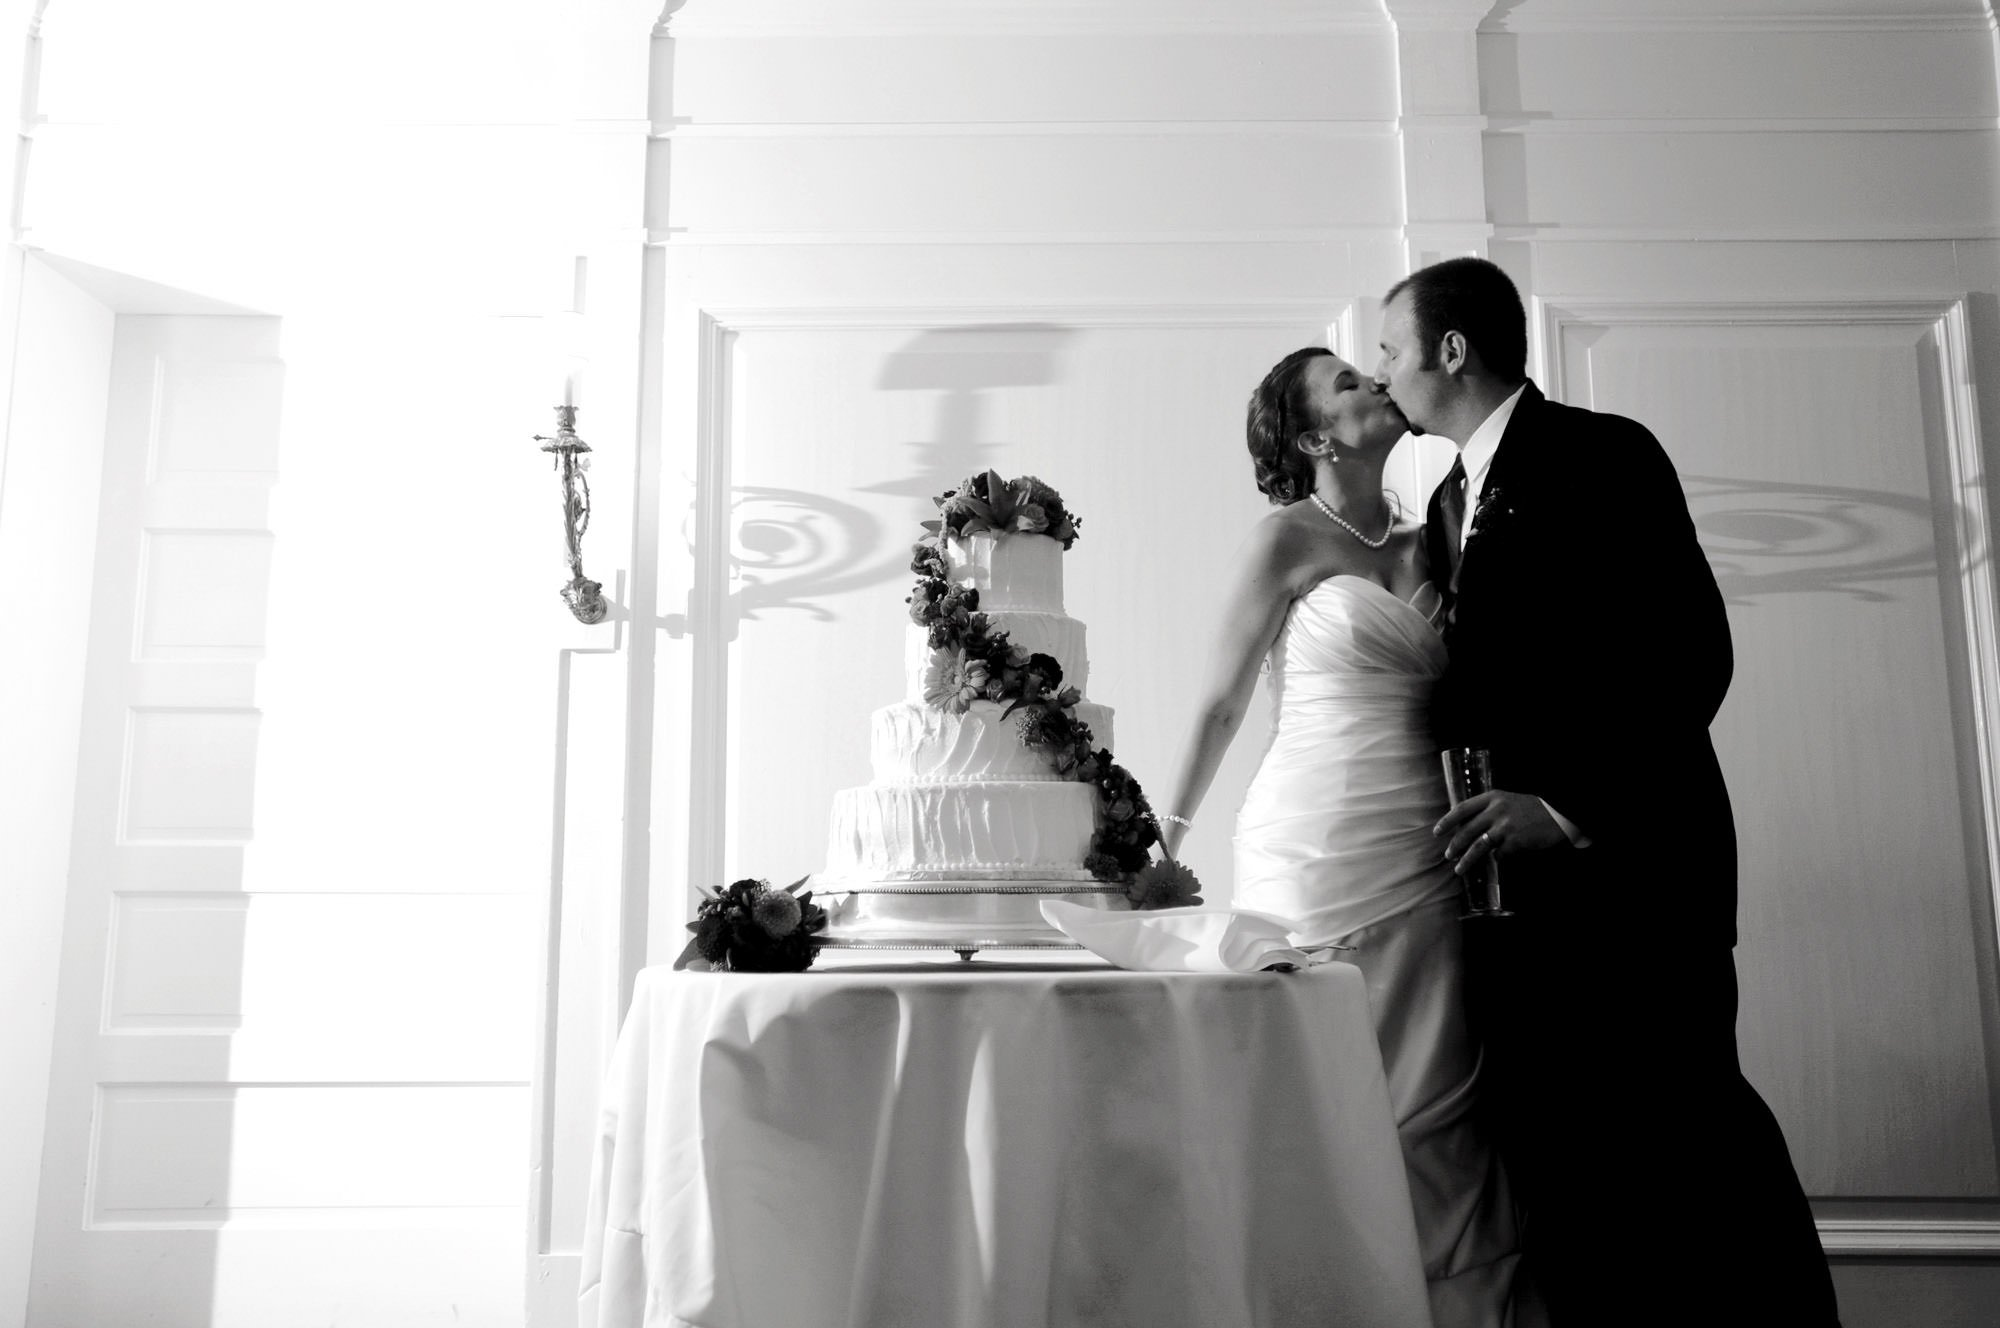 The bride and groom kiss before cutting their wedding cake at Whitehall Estate in Bluemont, VA.